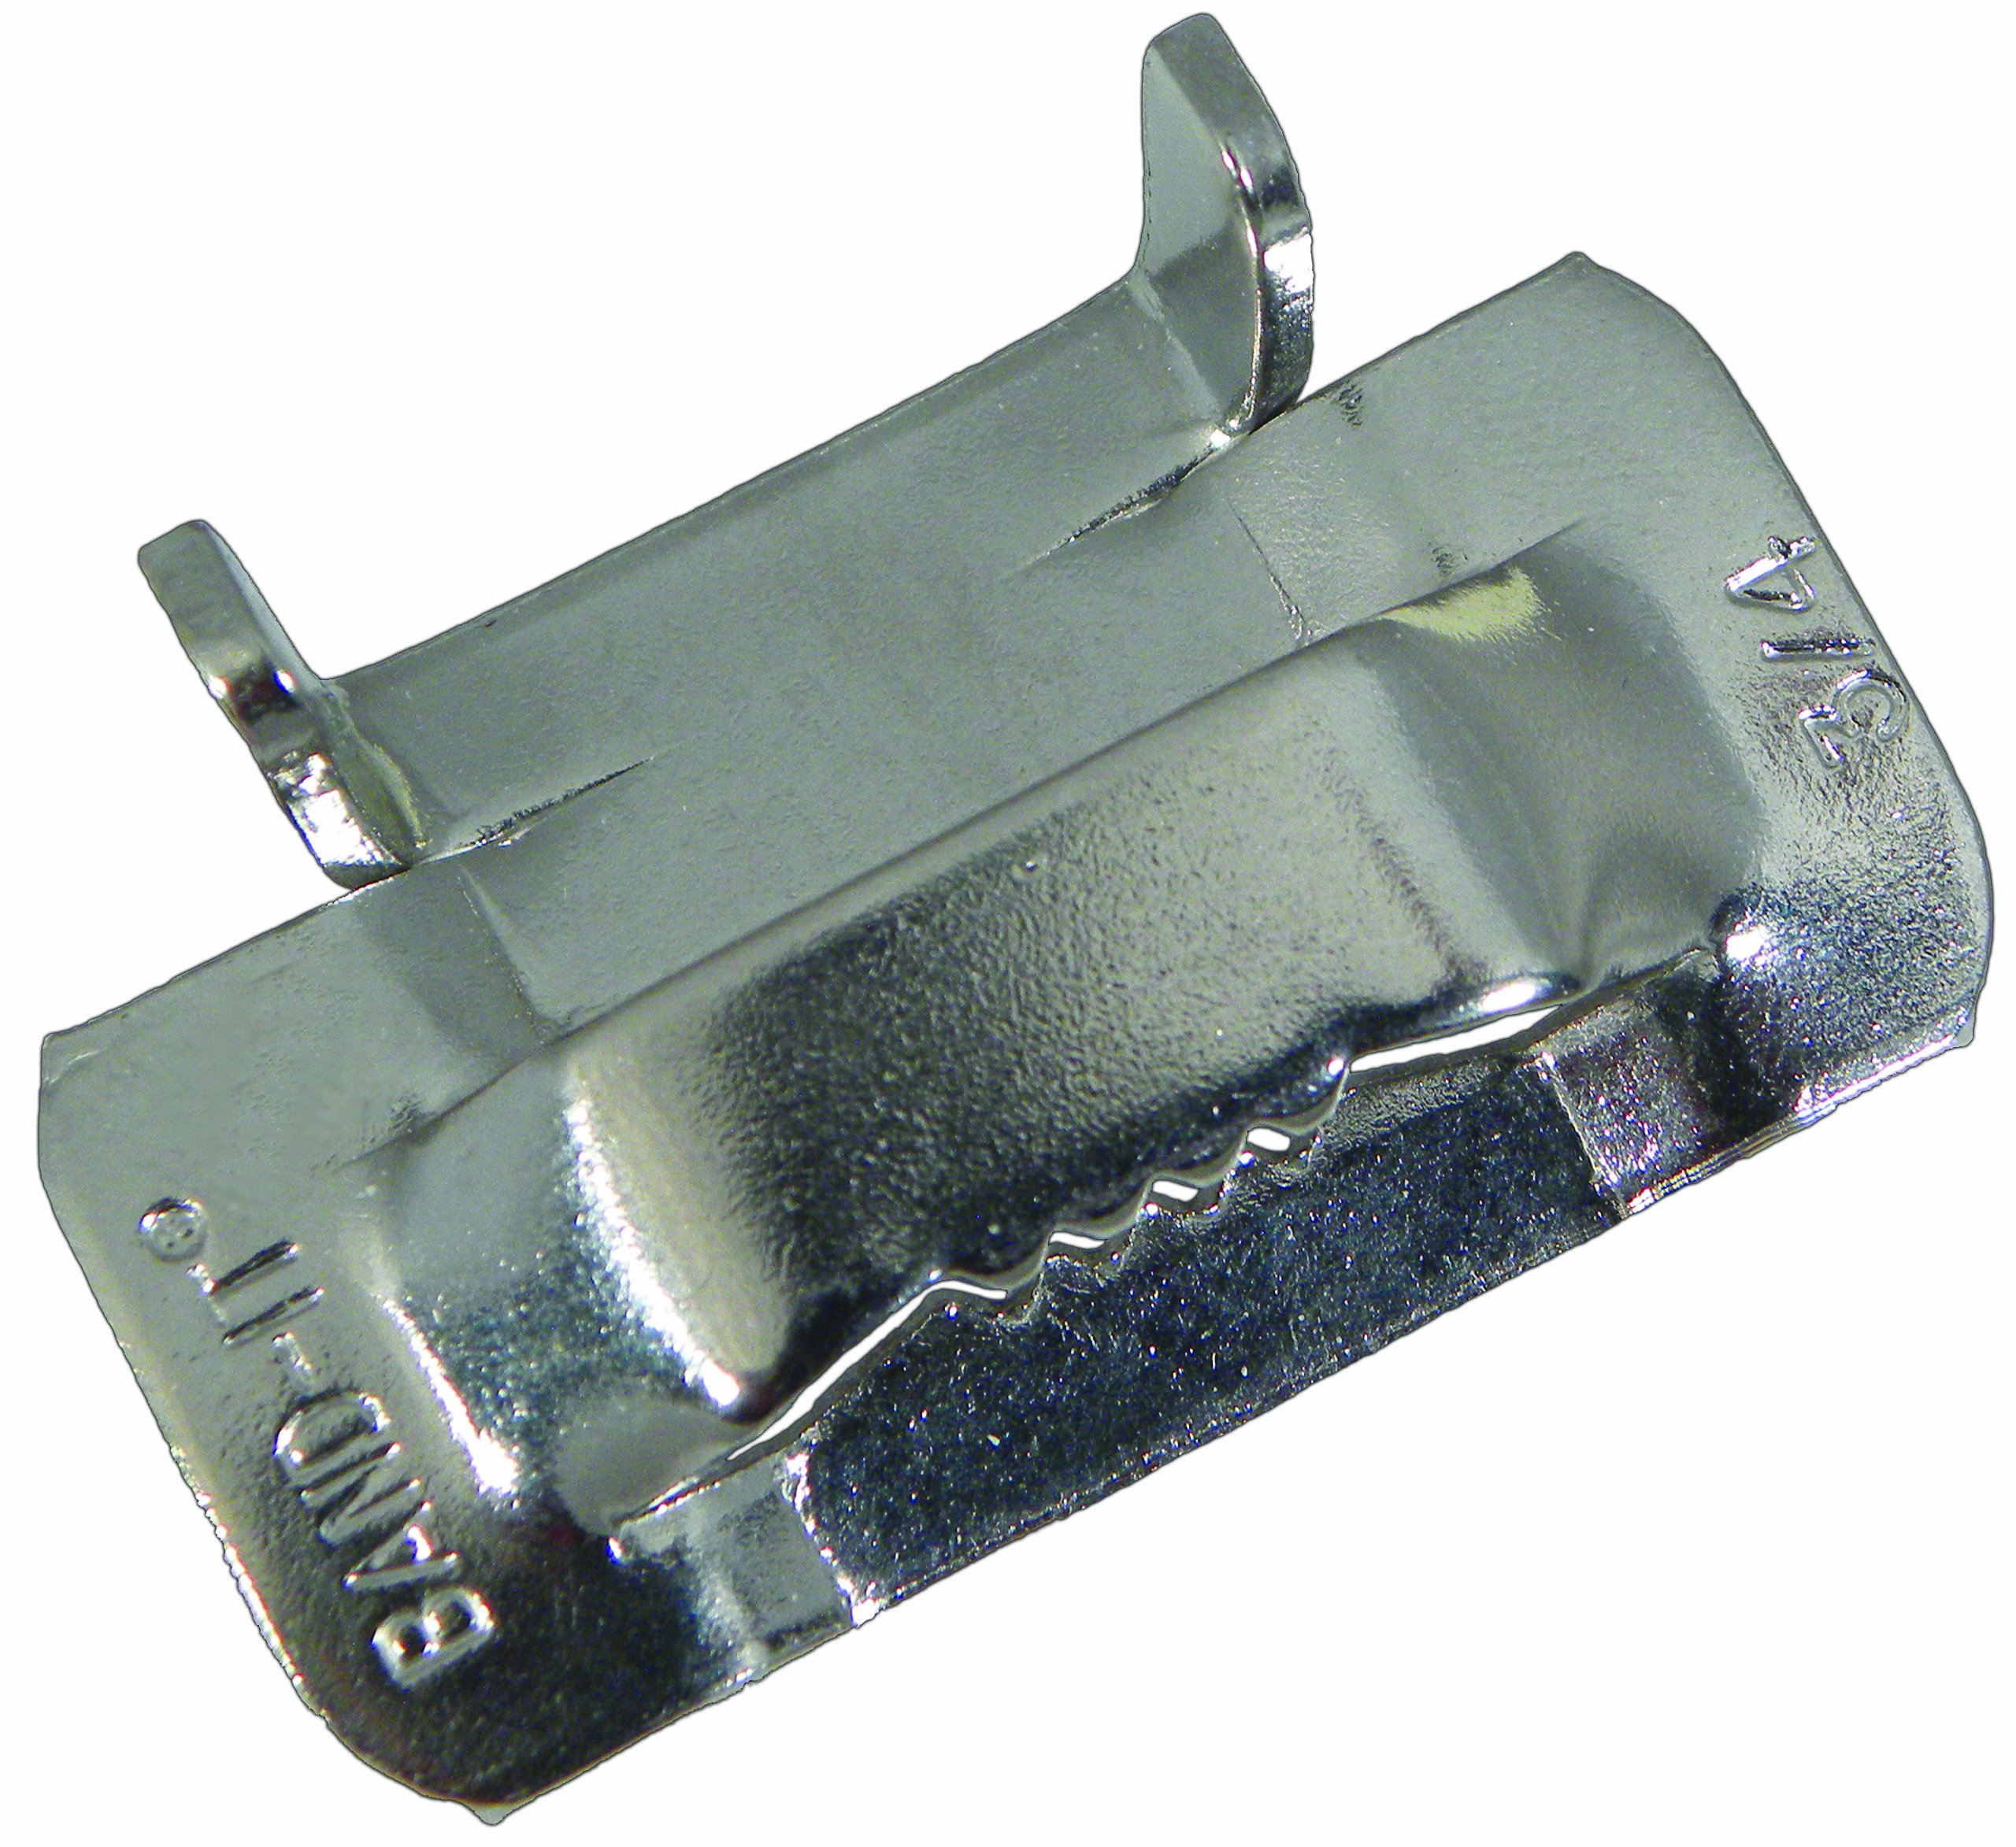 BAND-IT C25699 201/301 Stainless Steel Ear-Lokt Buckle, 3/4'' Width, 100 per Box by Band-It